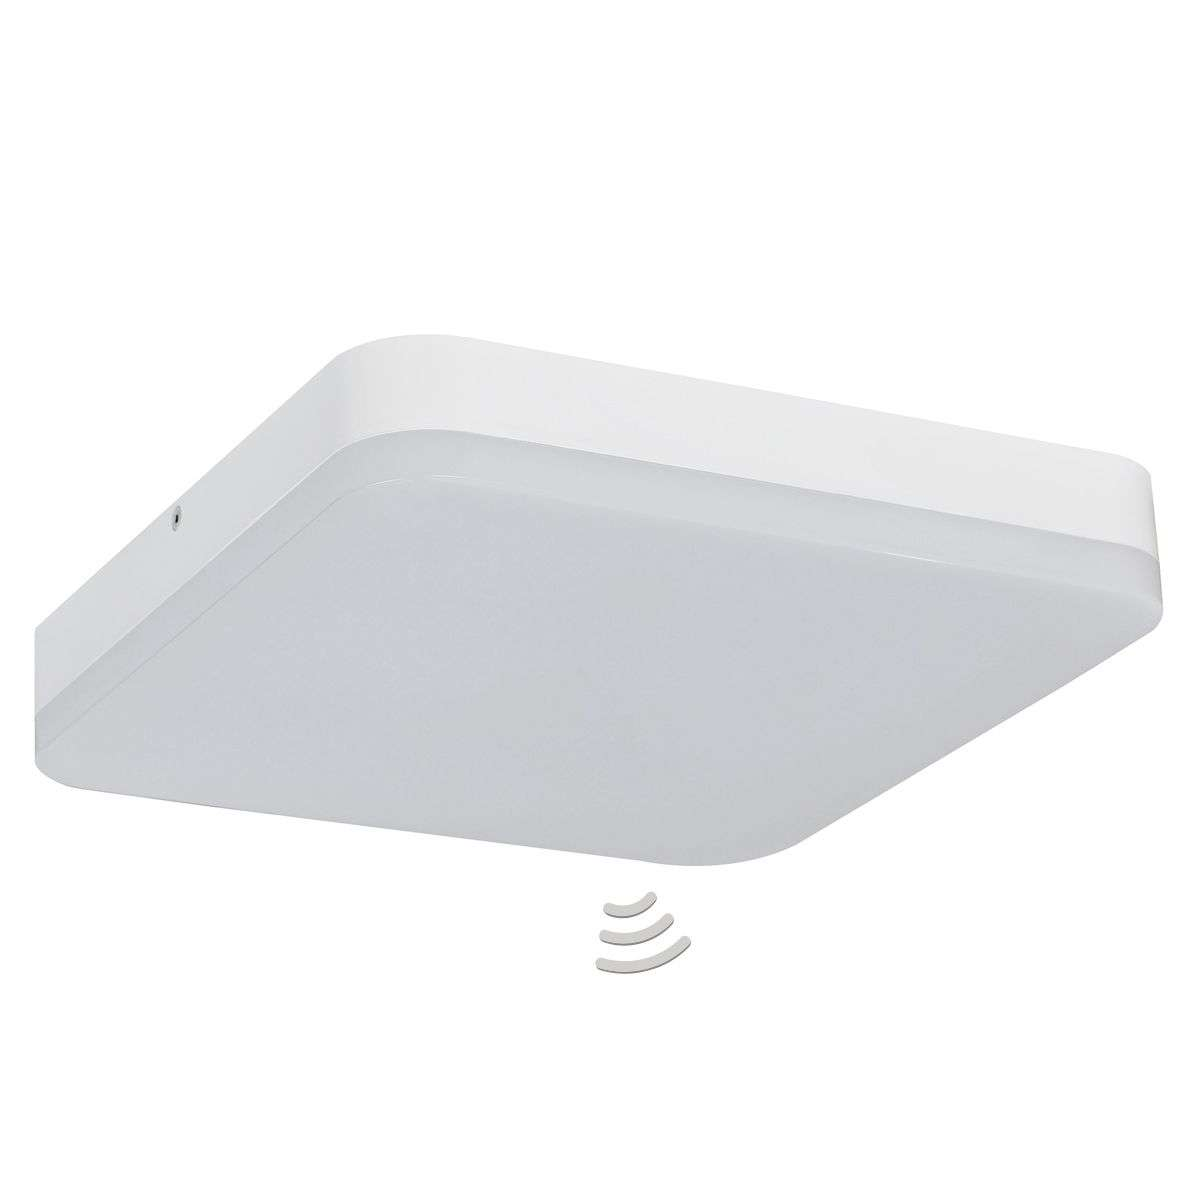 With sensor led ceiling lamp office square lights with sensor led ceiling lamp office square 8559227 32 mozeypictures Gallery